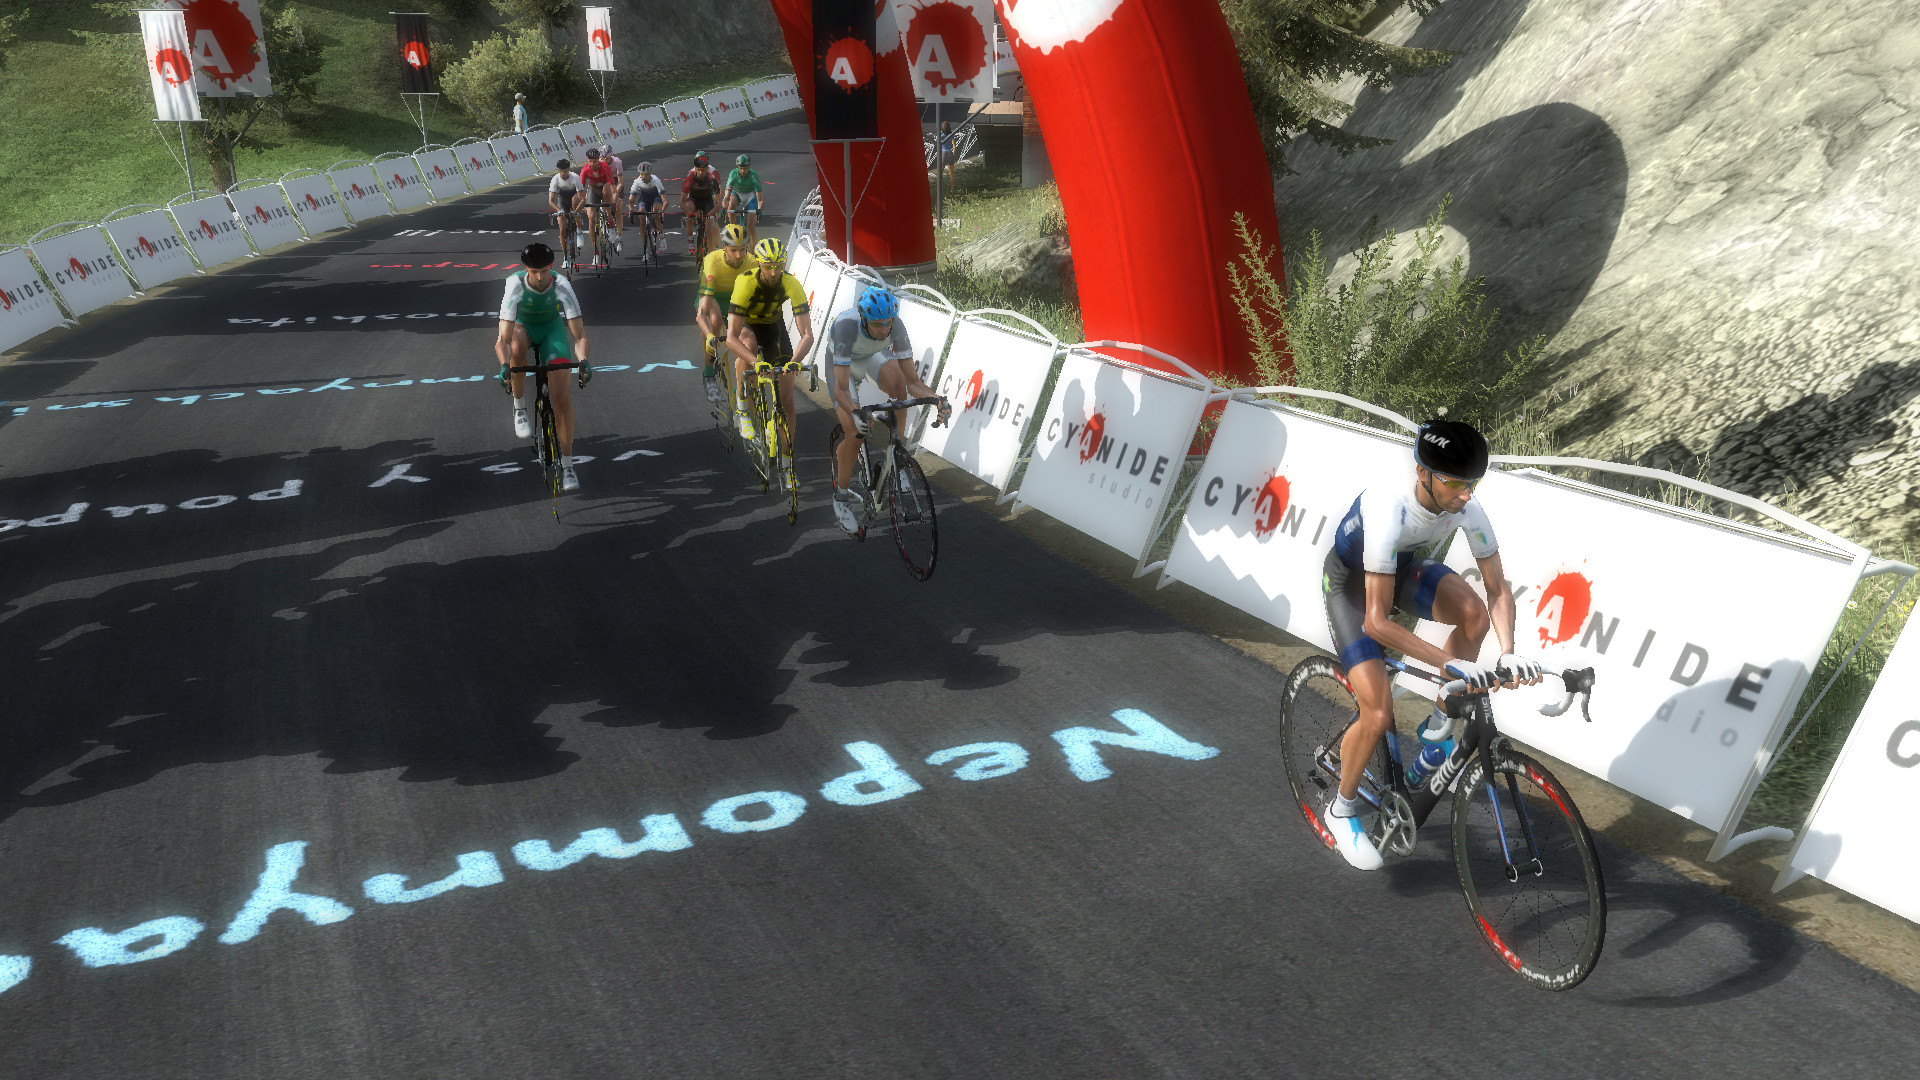 pcmdaily.com/images/mg/2019/Races/C1/MilTor/57.jpg